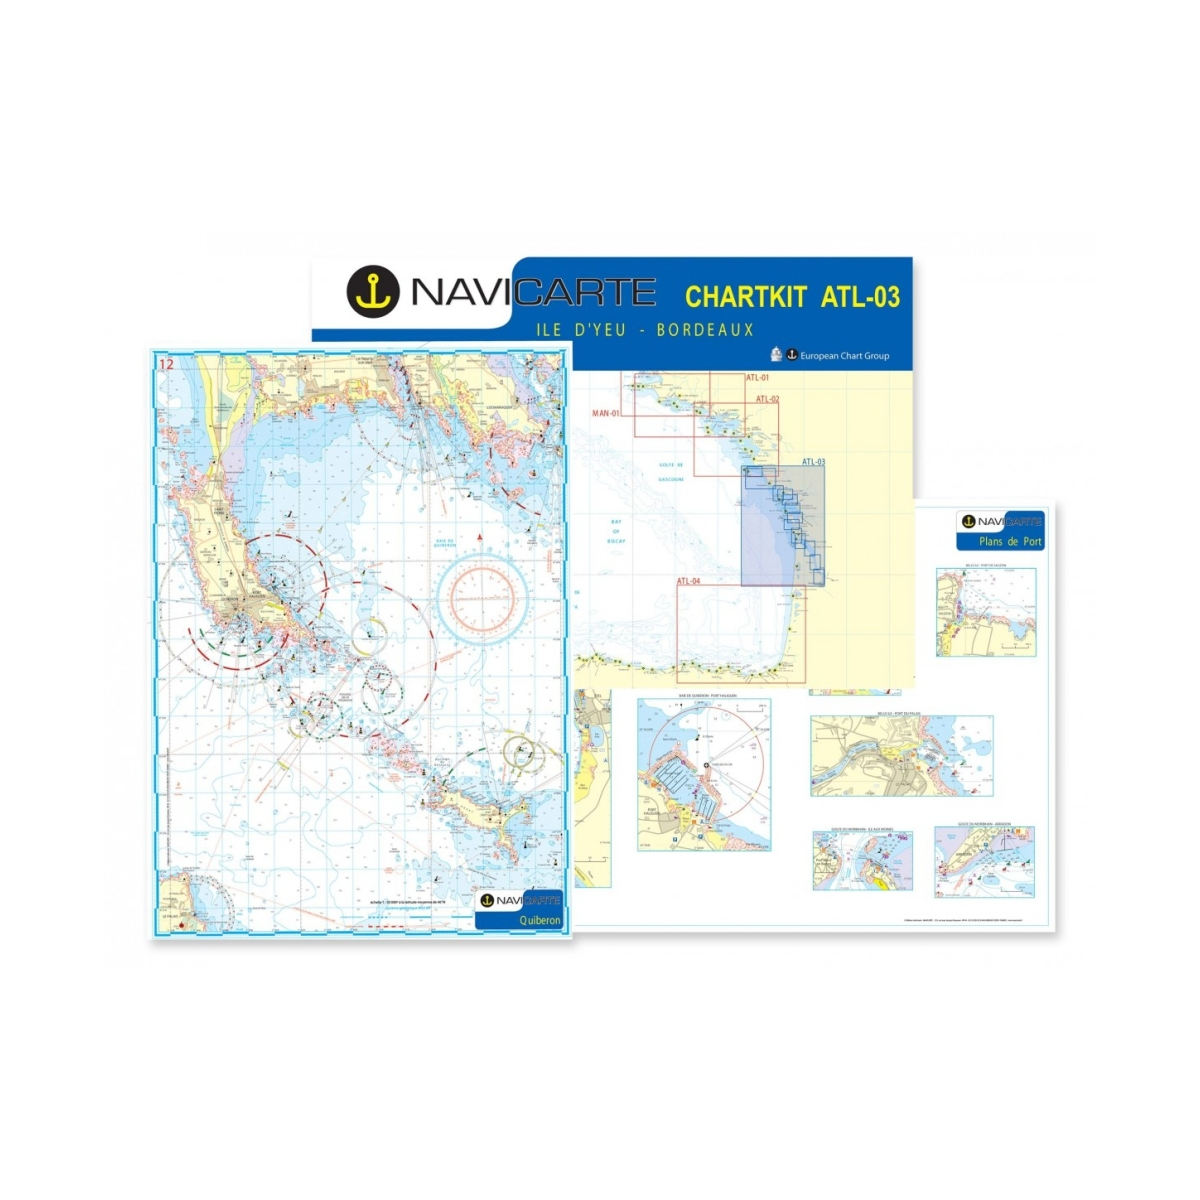 ATLANTIC CHARTKIT